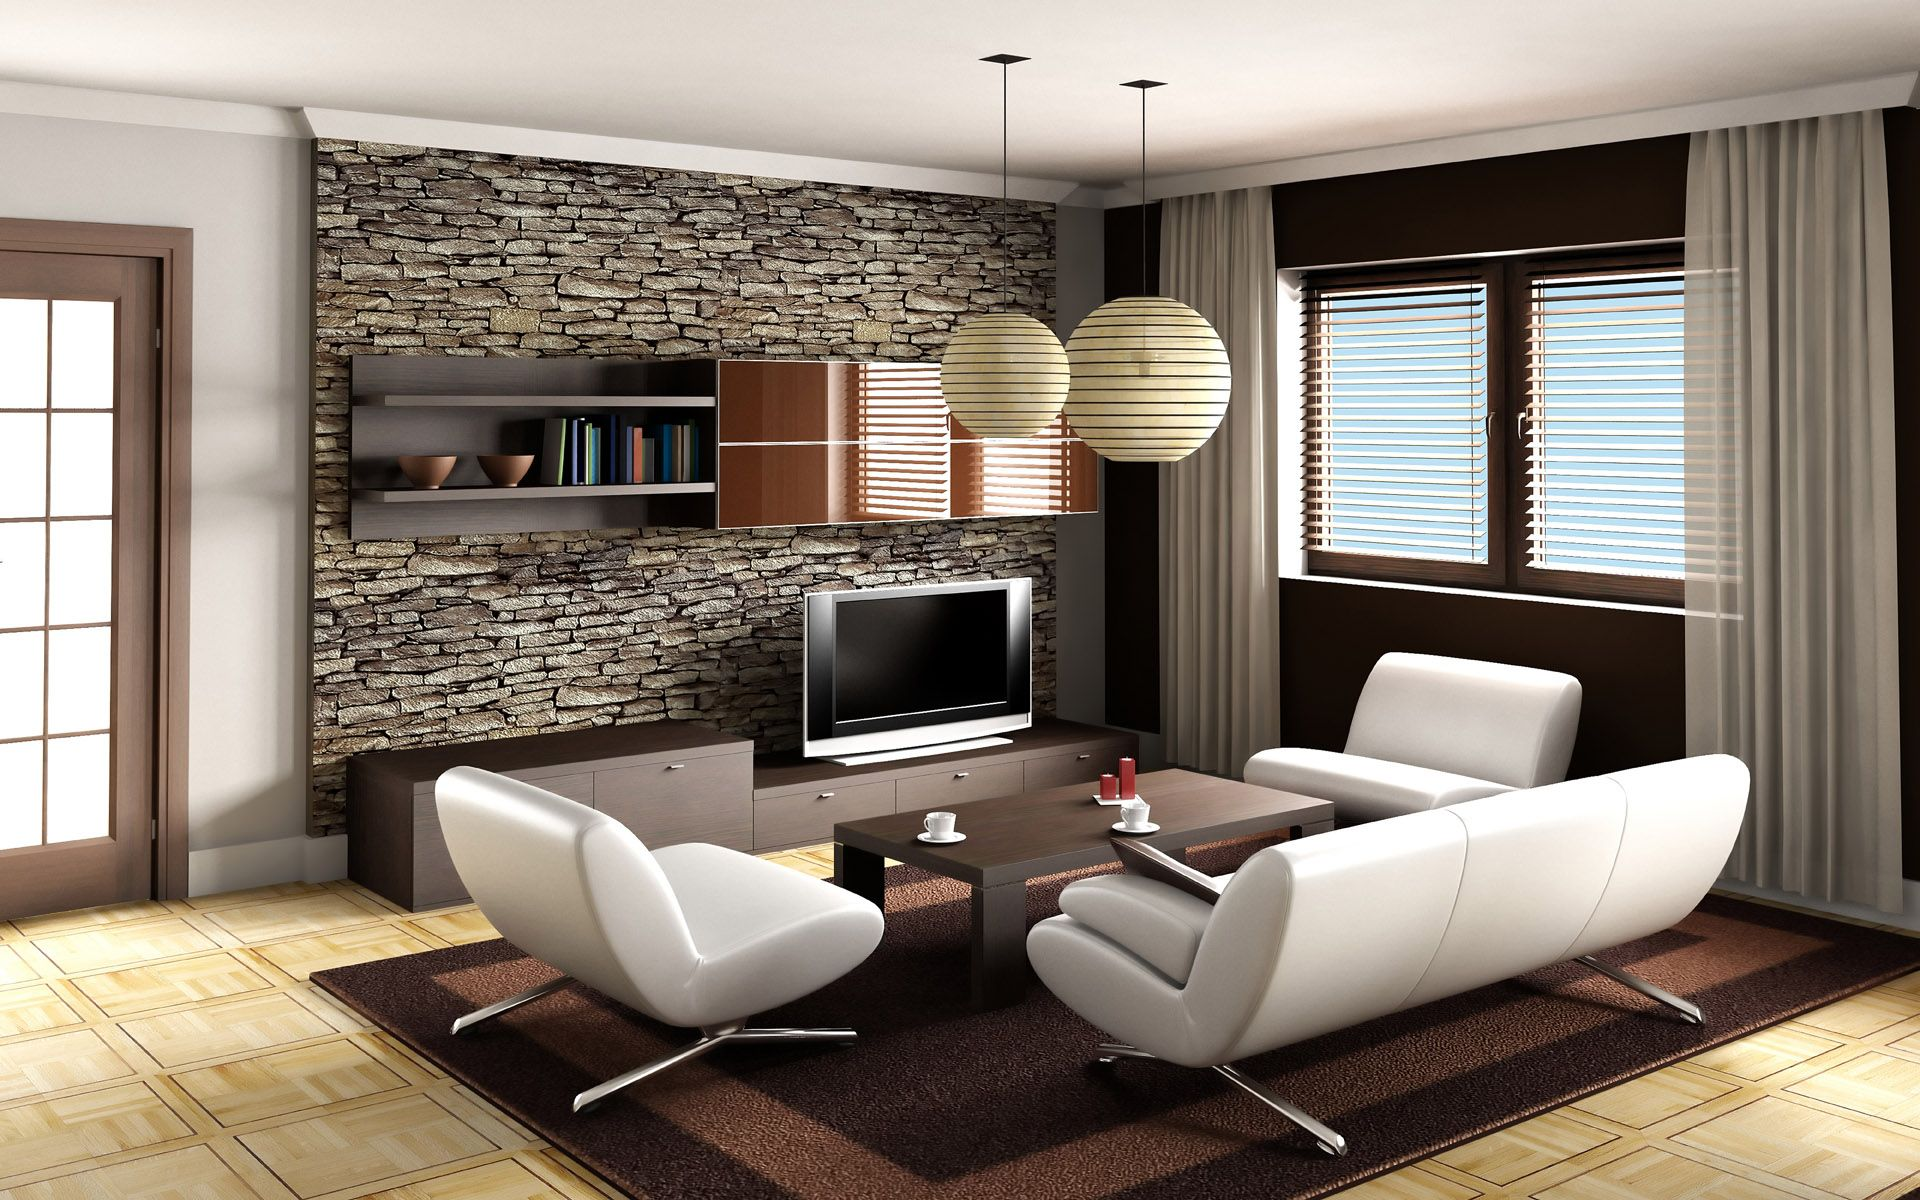 Ideas For Living Roomv Are You Looking For Small Living Room Ideas To Make The Limited